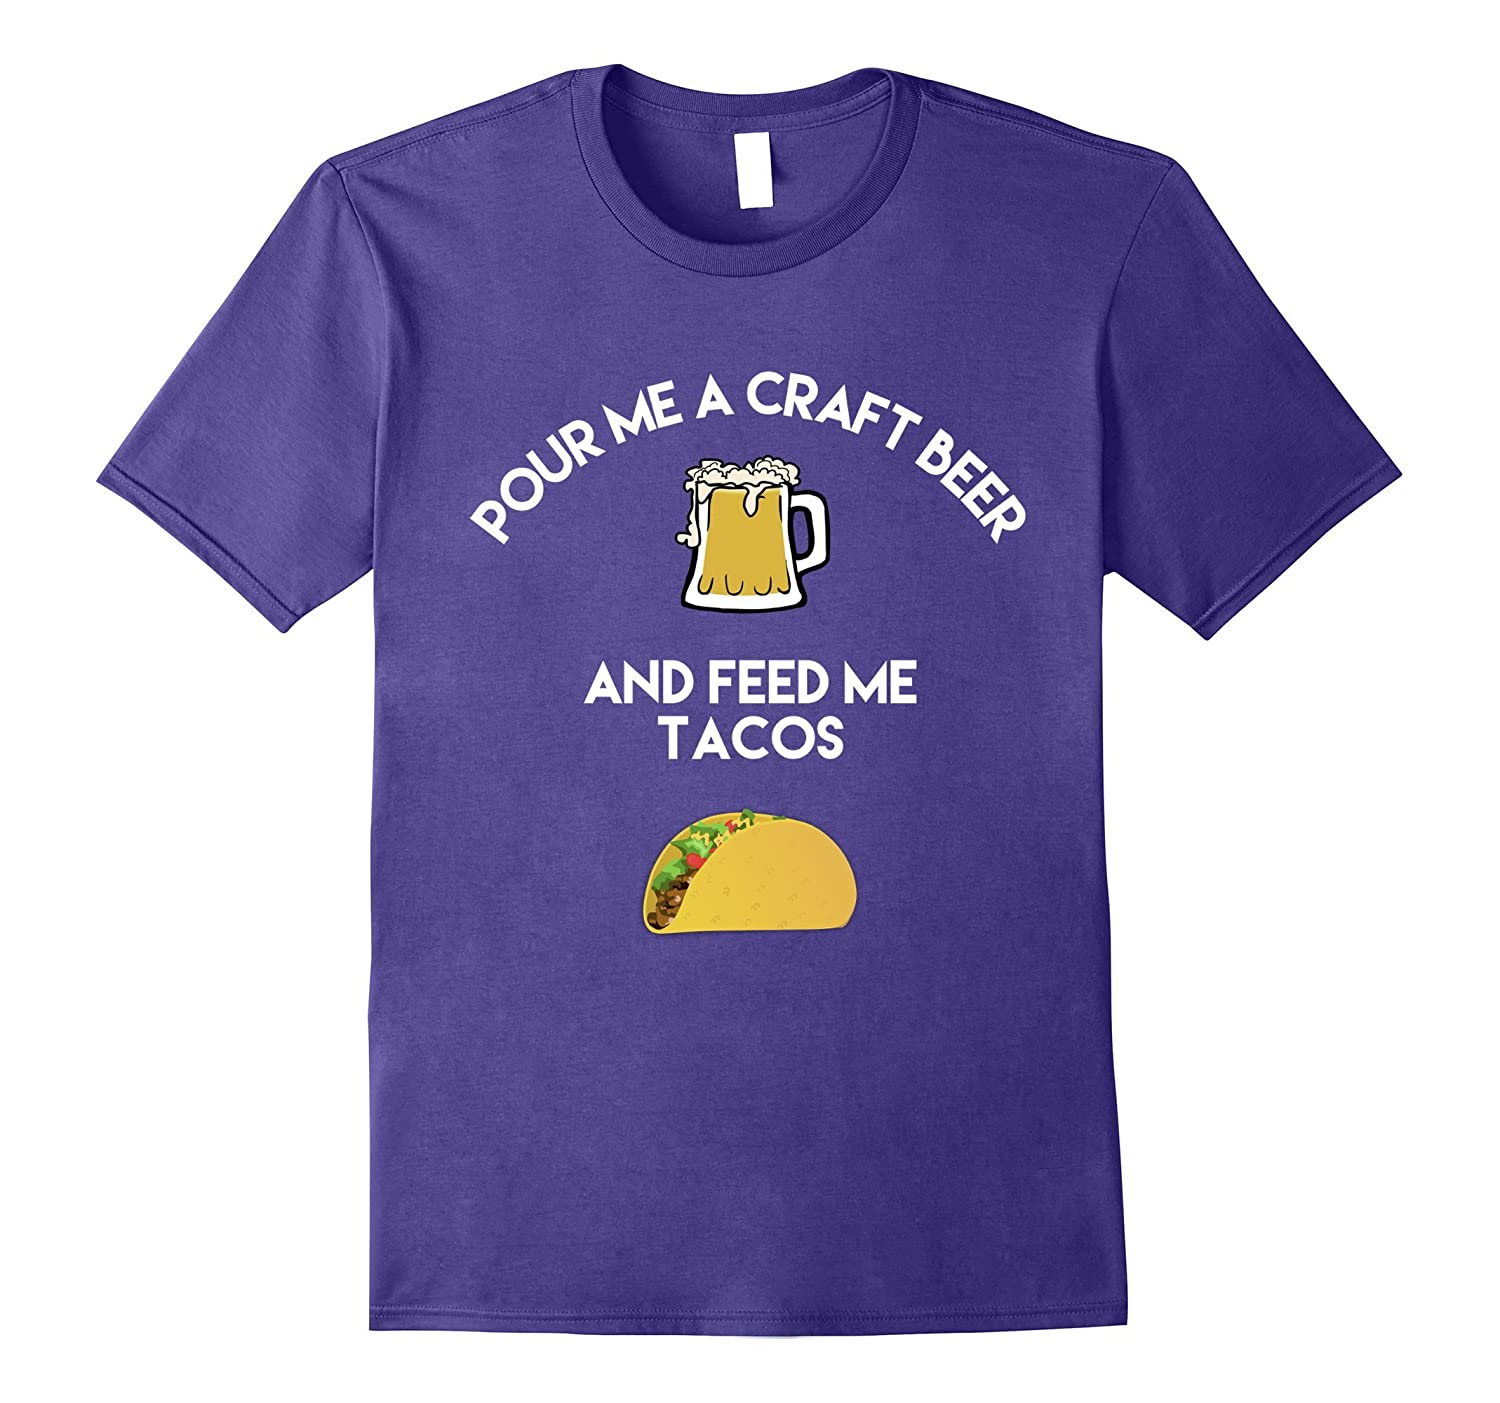 Pour Me Craft Beer And Feed Me Tacos Graphic Logo T-Shirt-Vaci